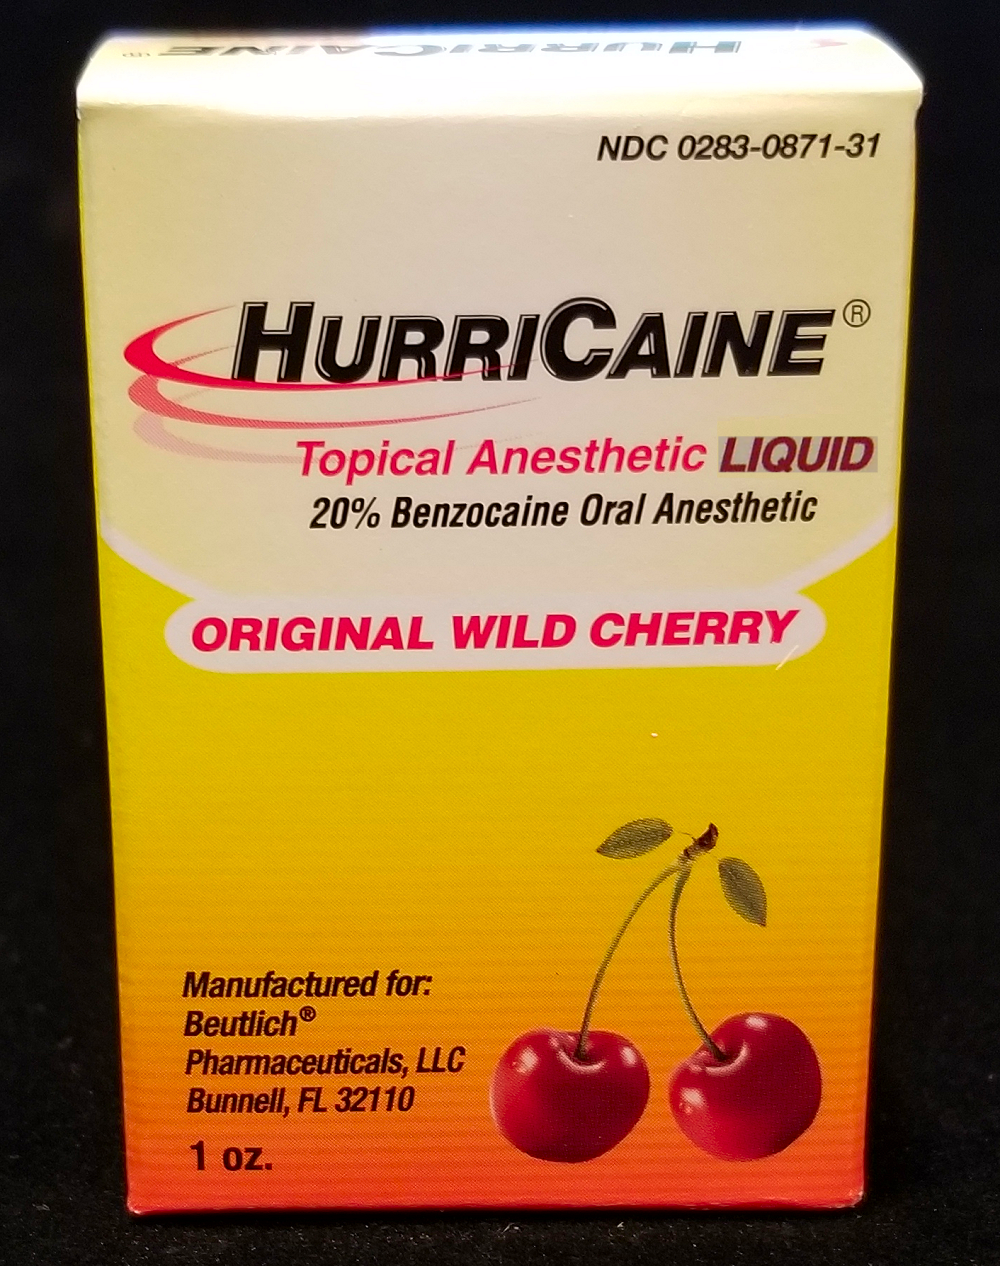 Hurricaine Liquid Anesthetic